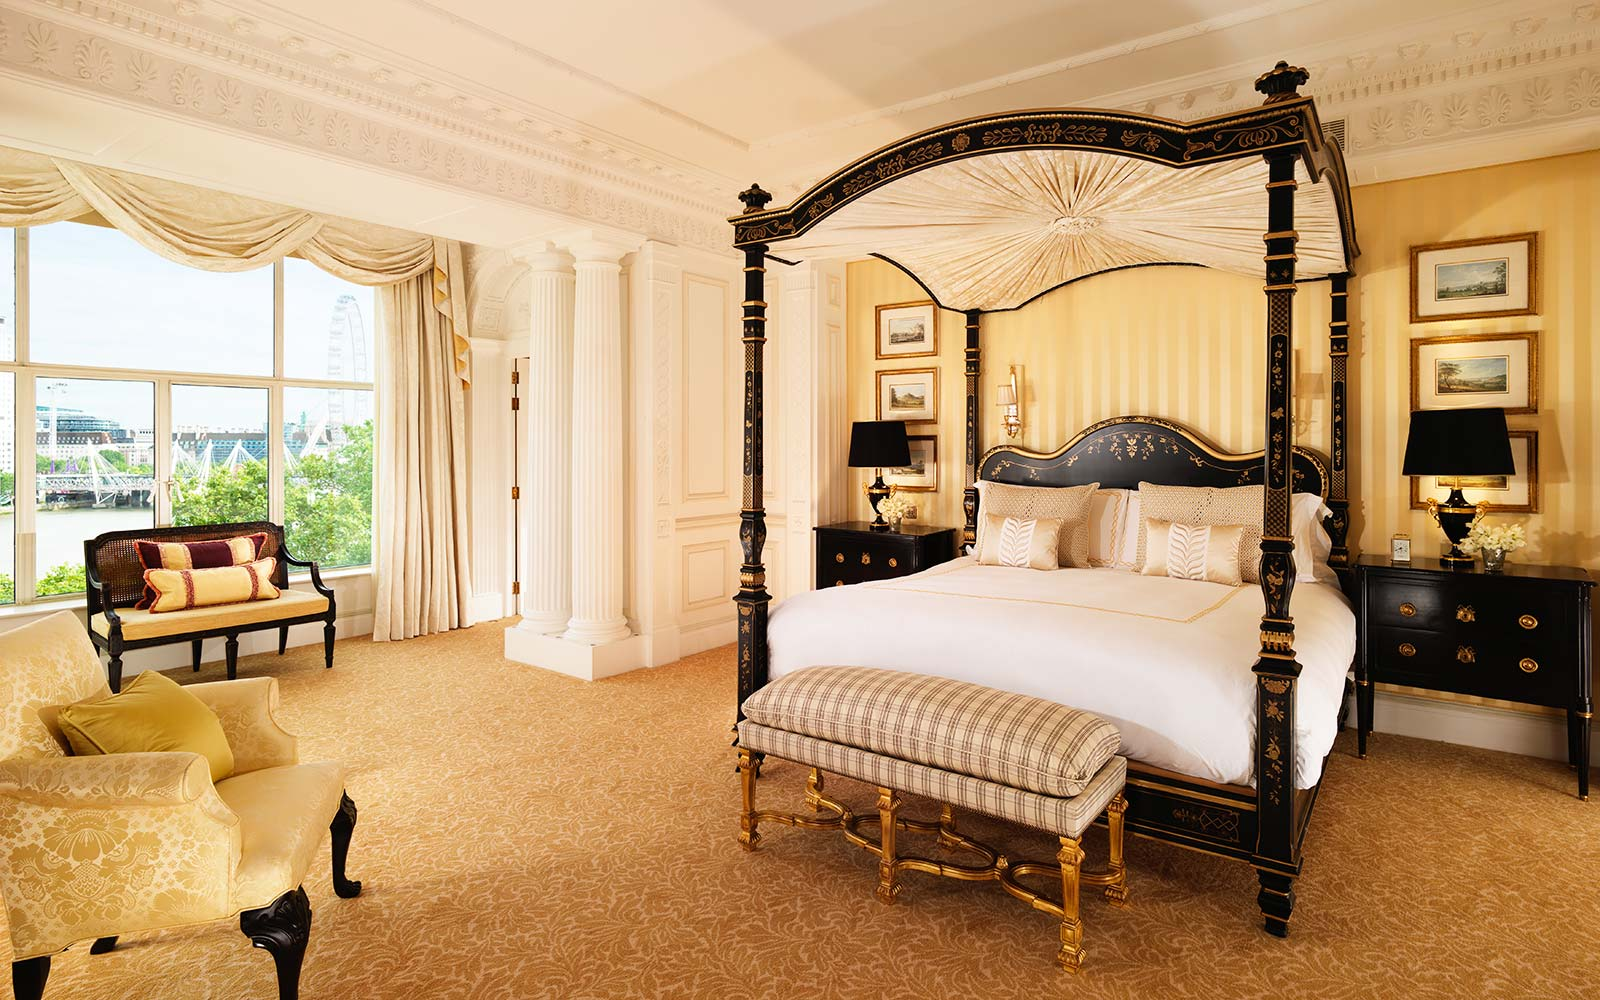 Savoy London Claims to Have the Most Comfortable Bed in the World